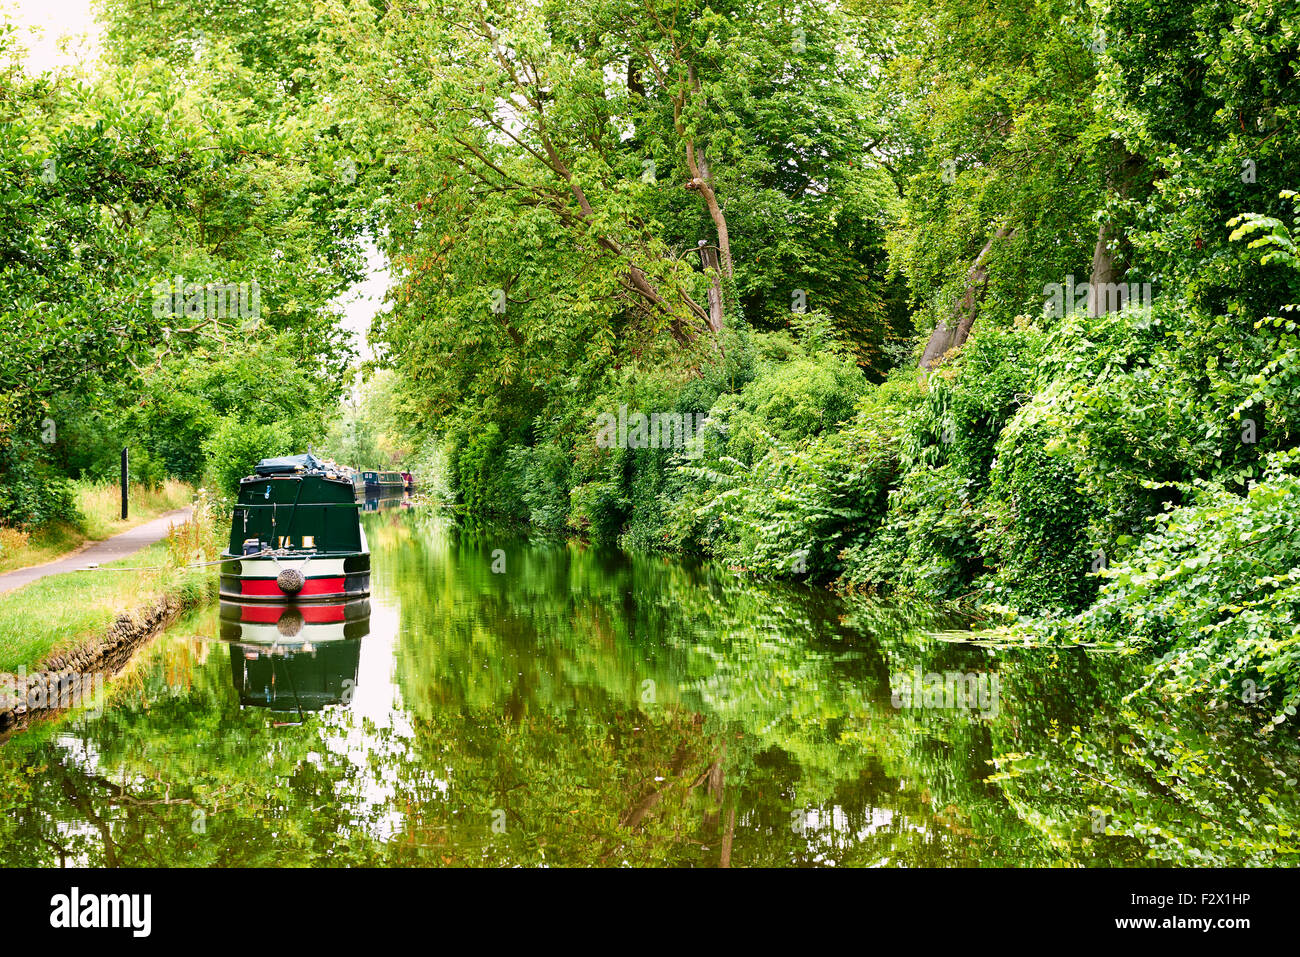 Houseboats in the Oxford Canal, Oxford, Oxfordshire, Great Britain, Europe - Stock Image